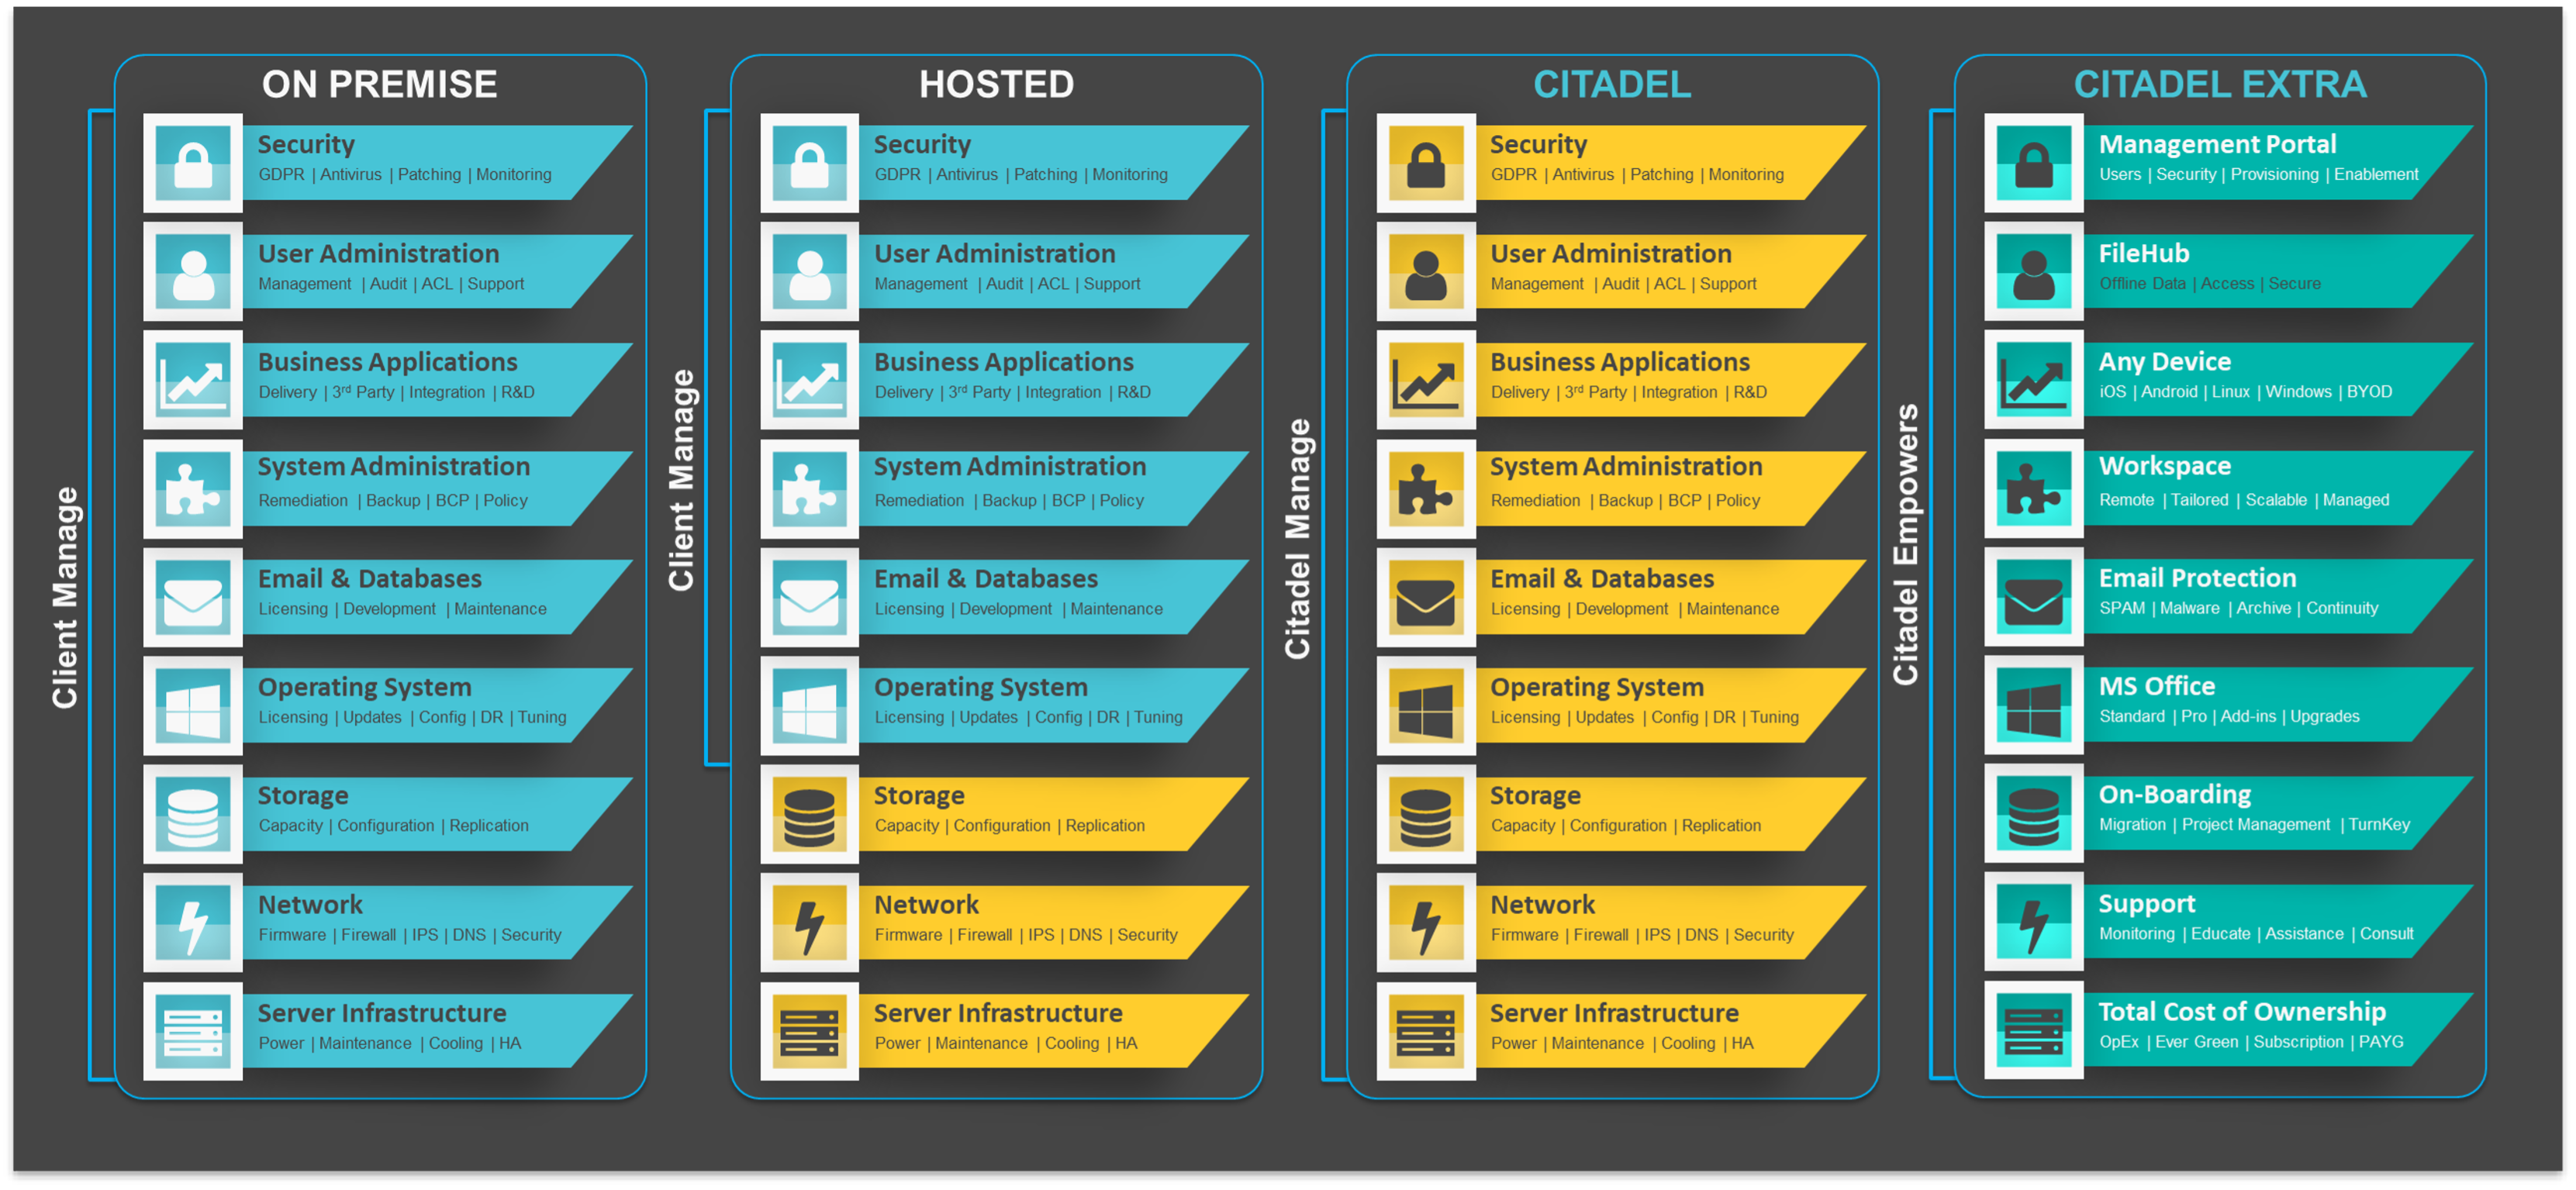 What makes Citadel Technology different from other cloud solution providers in table format.